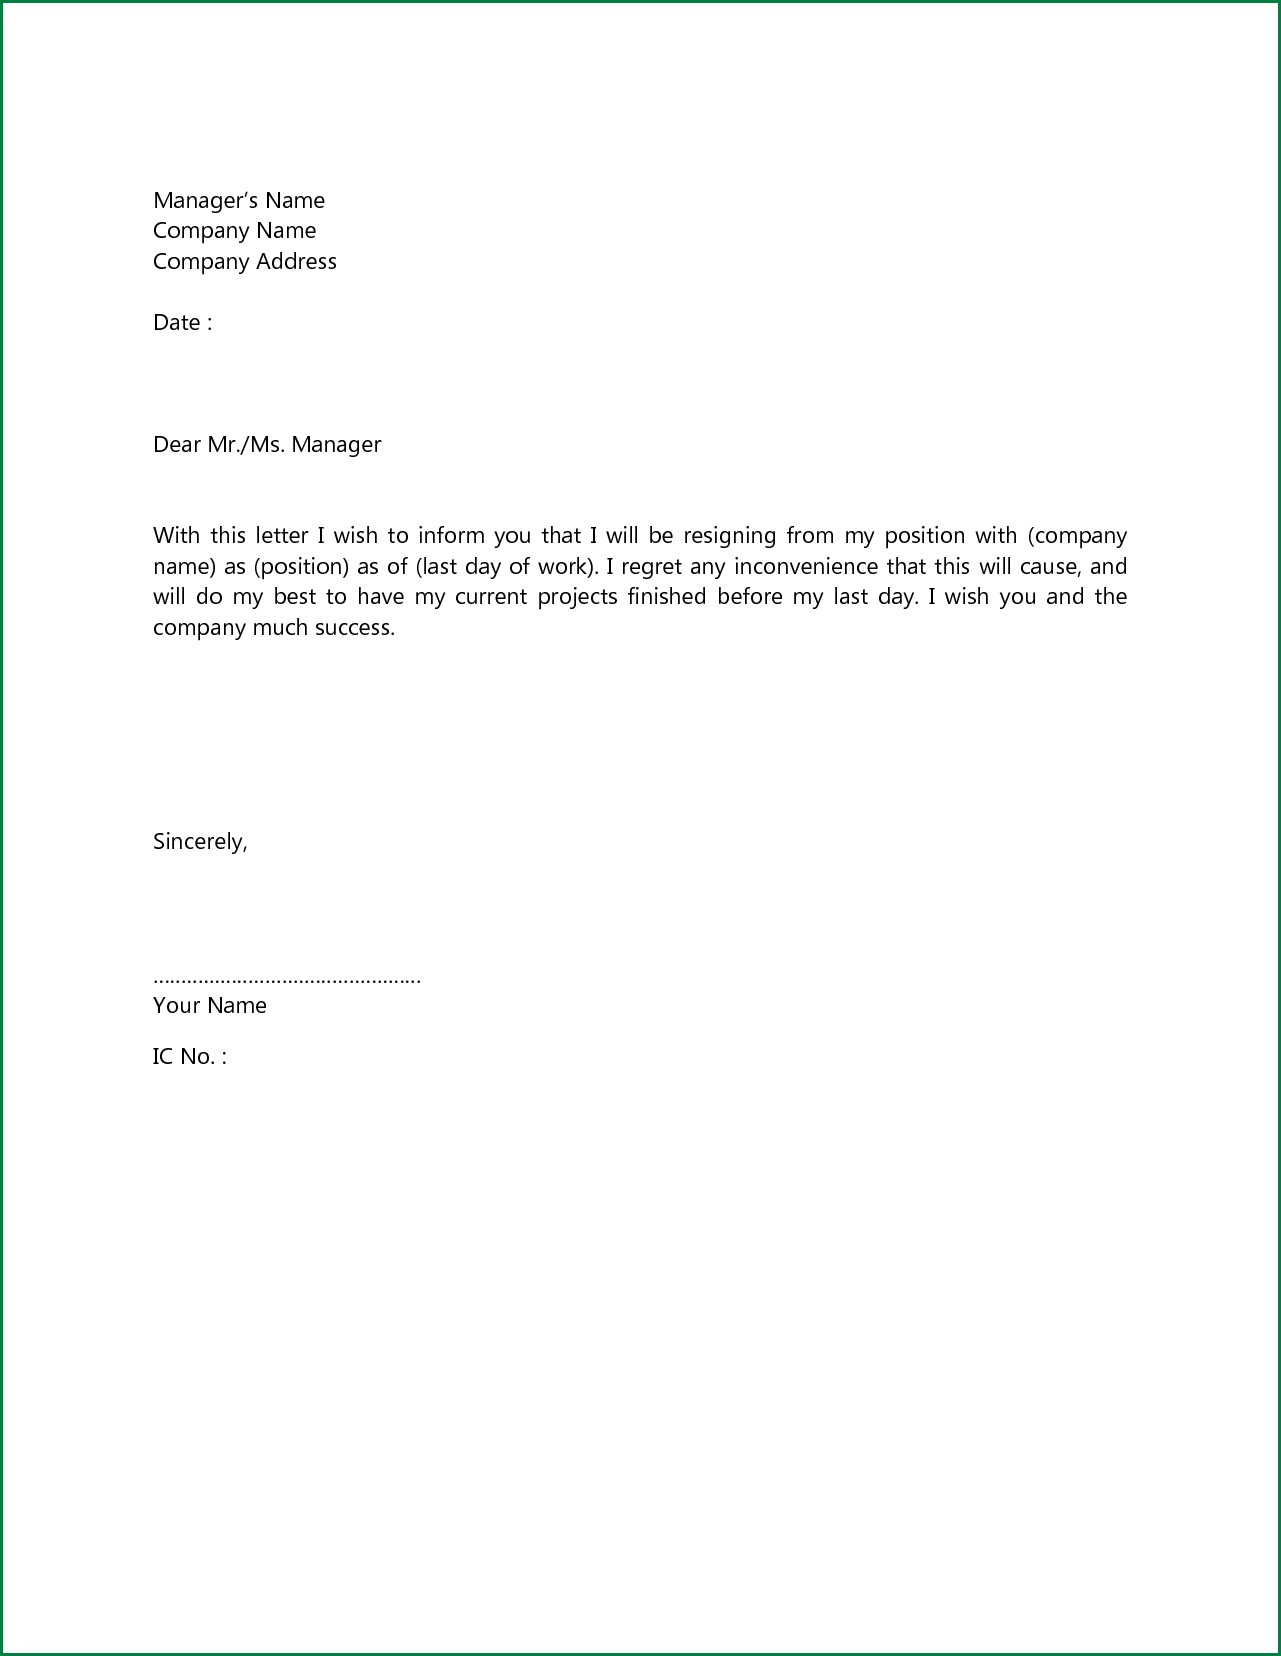 simple resignation letter sample with reason simple resignation letter samples 25394 | simple resignation letter samples examples of resignation letters inspirationa 11 simple and short resignation letter sample of examples of resignation letters